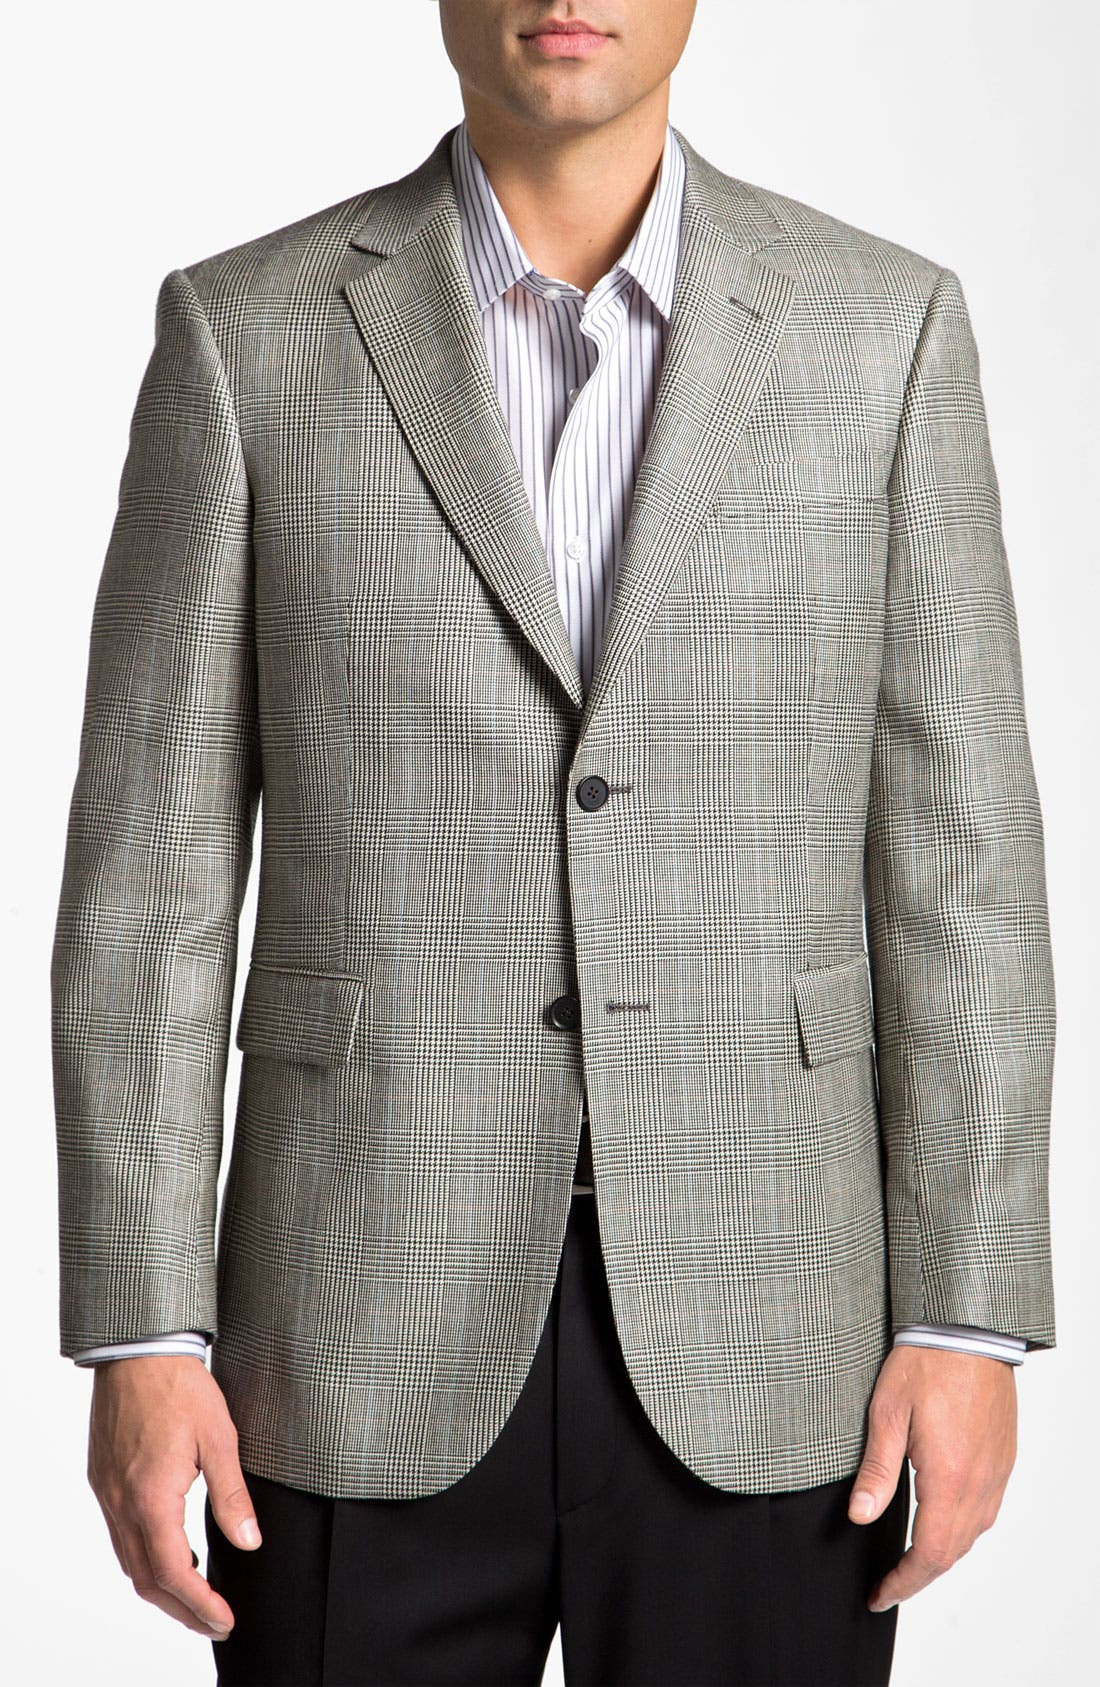 Alternate Image 1 Selected - John W. Nordstrom® Plaid Sportcoat